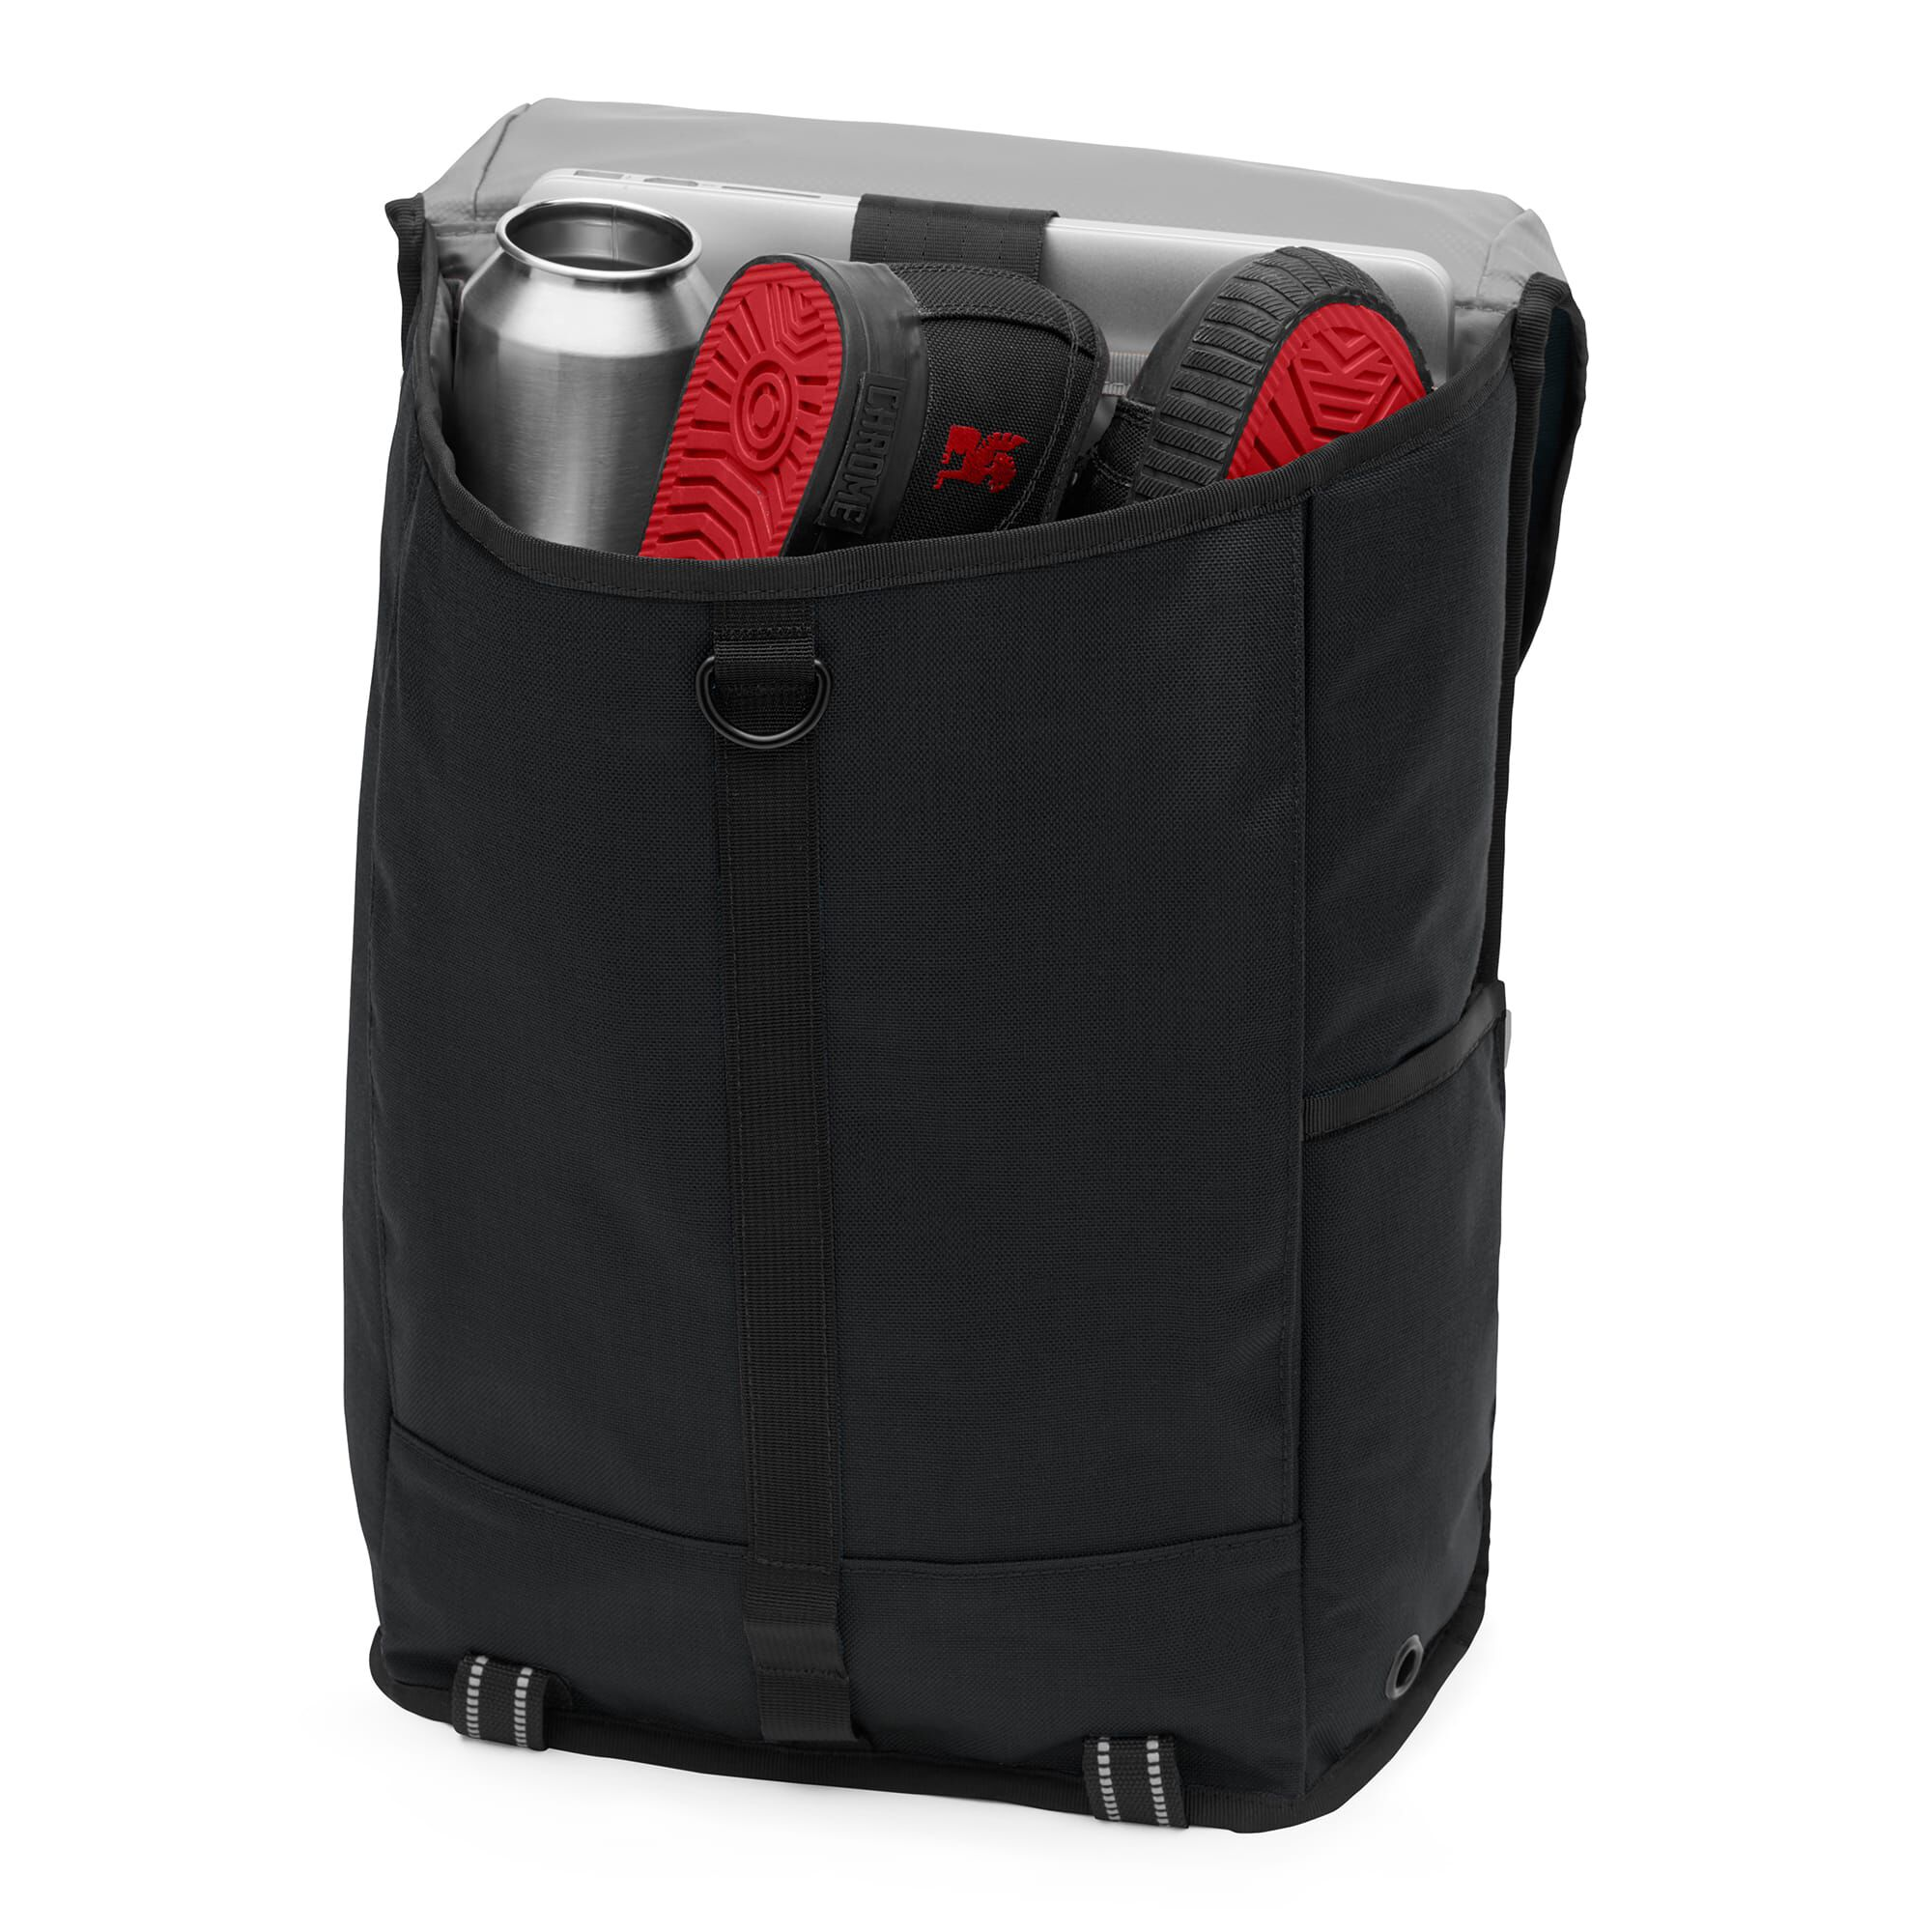 c1123ae881 Soma Backpack - Fits laptops up to 15